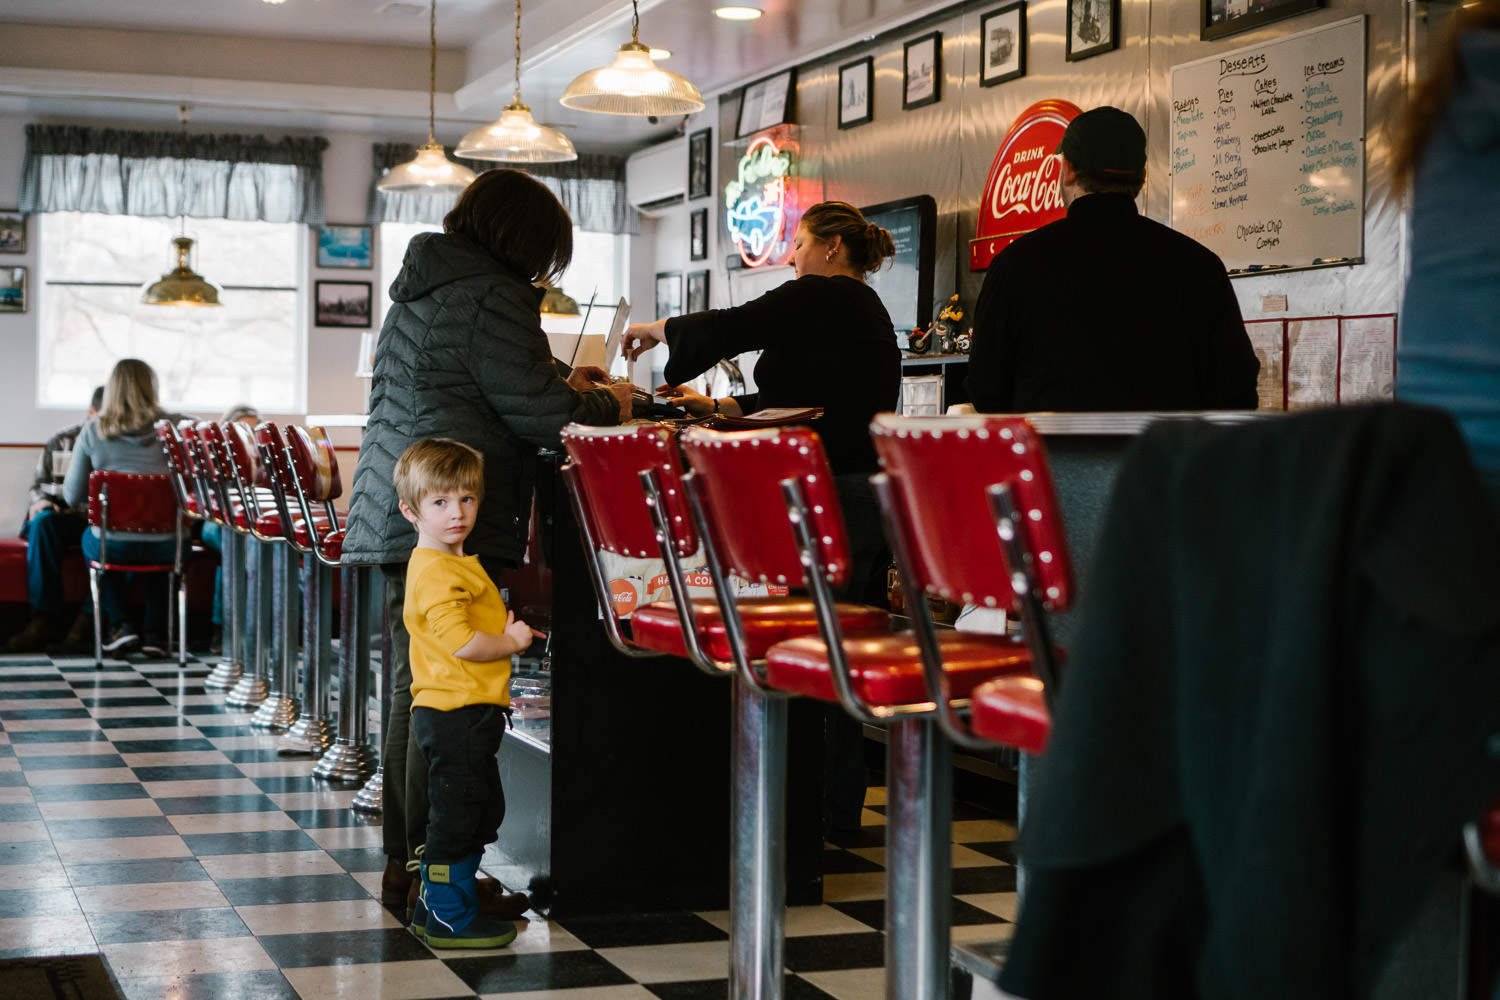 A little boy and his grandmother stand at the register in a diner.